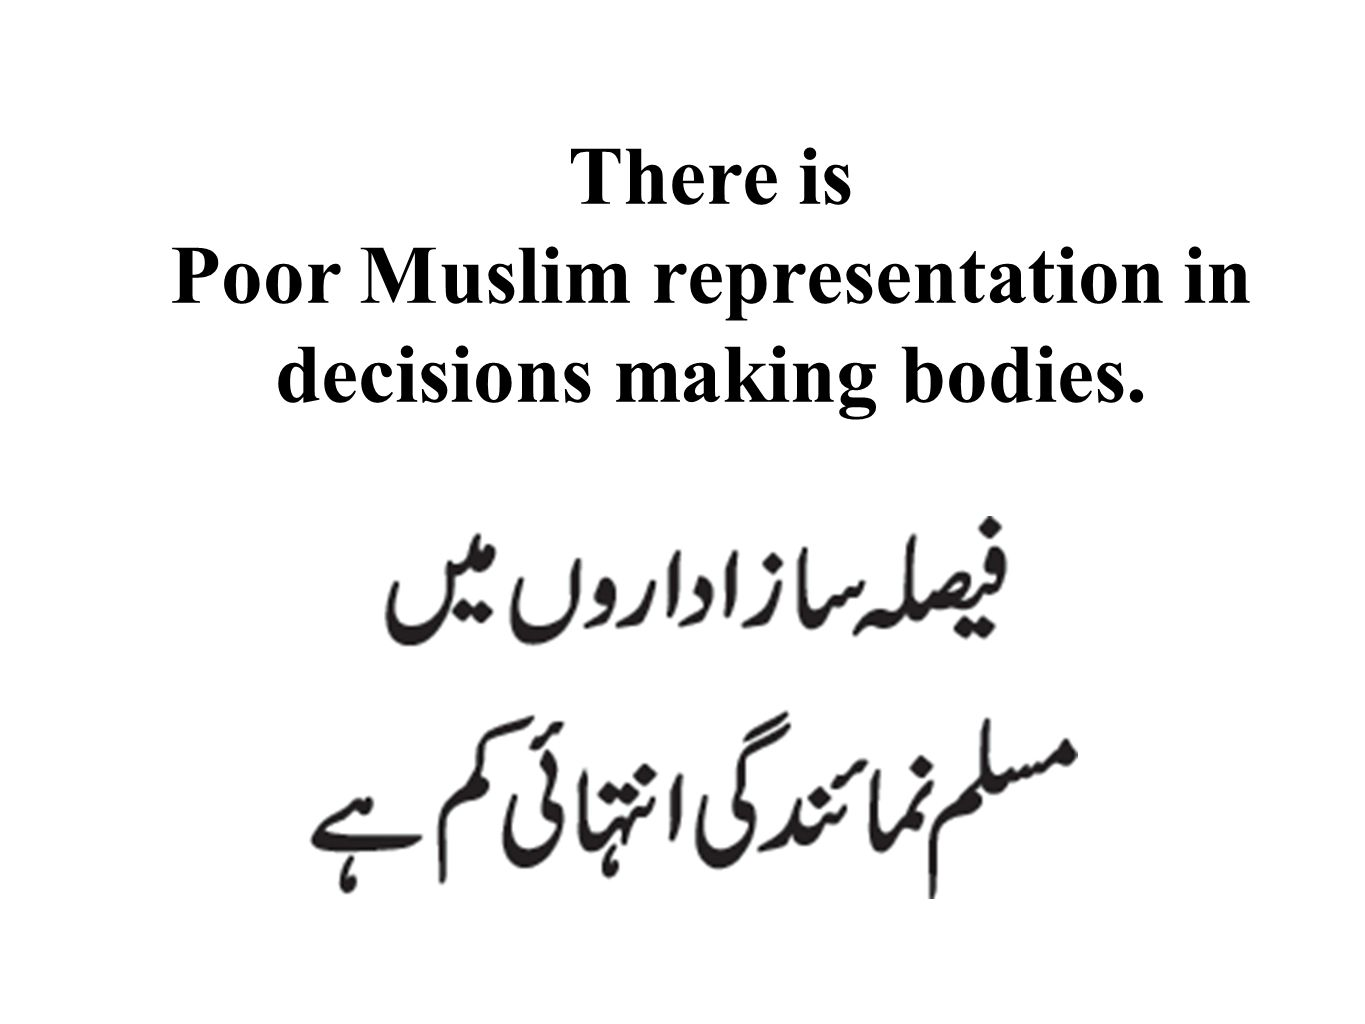 There is Poor Muslim representation in decisions making bodies.